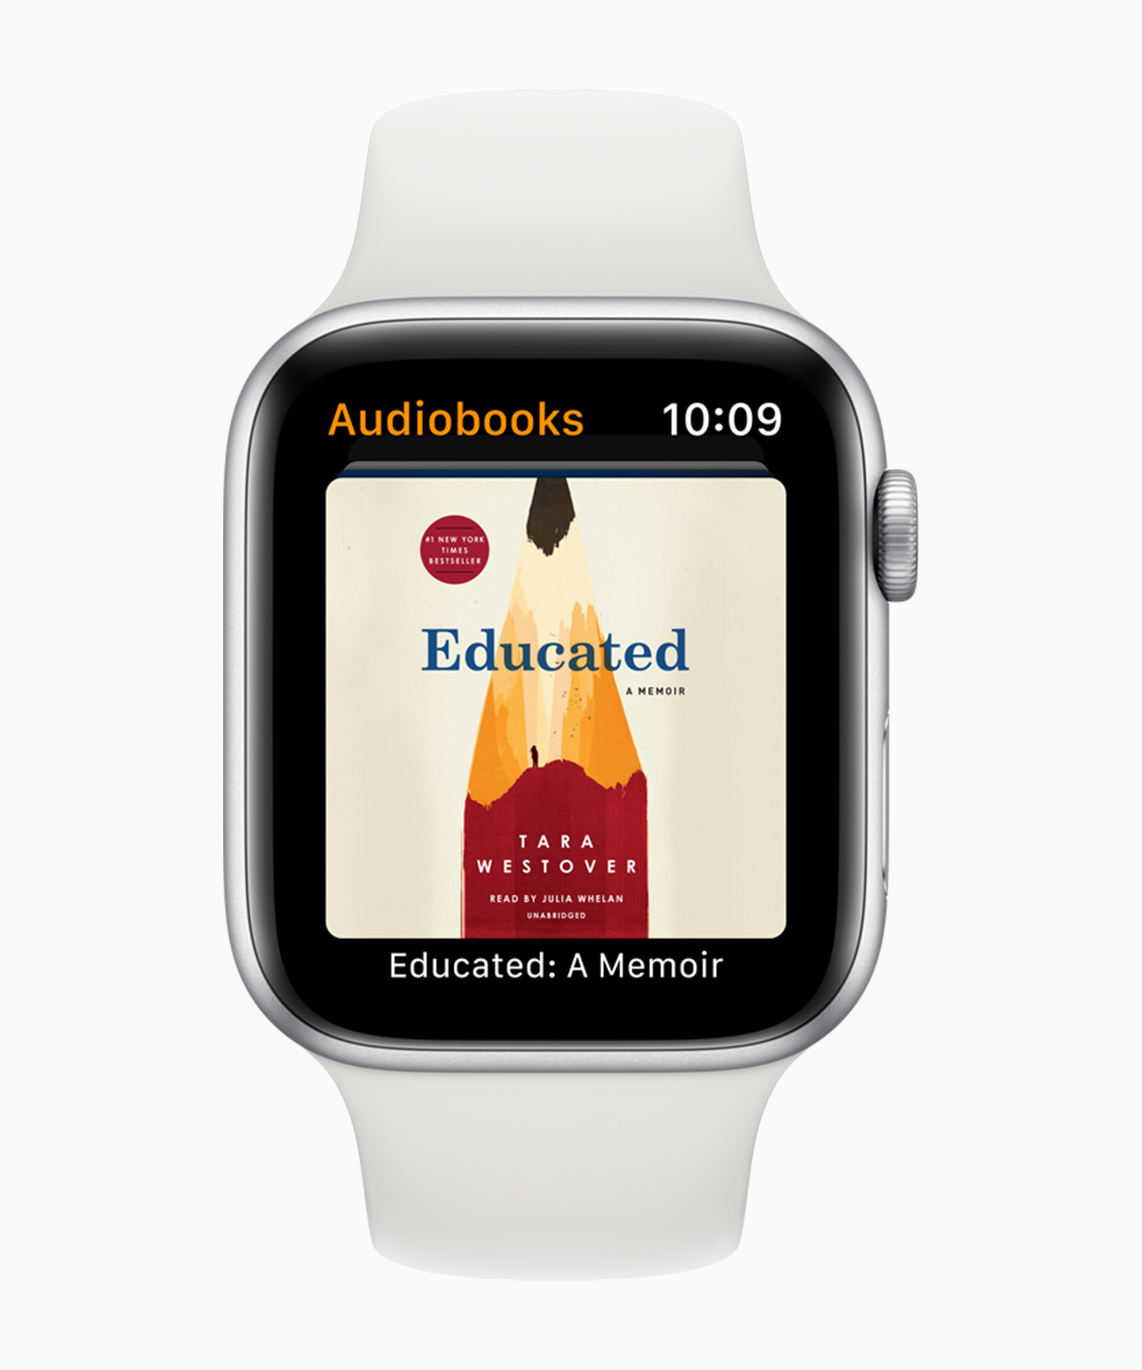 watchOS 6 introduces popular apps like Audiobooks